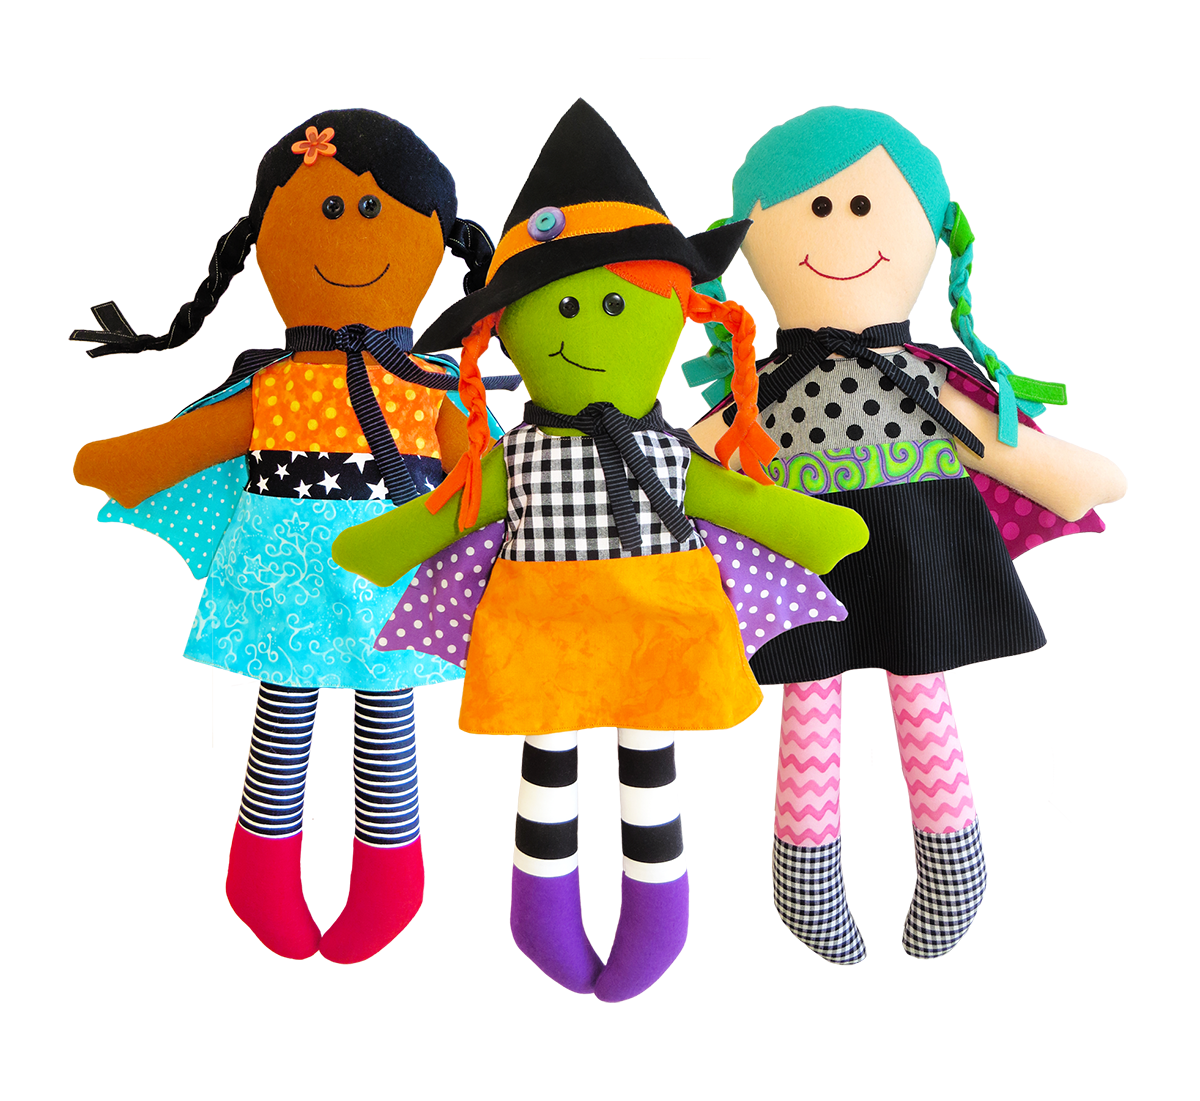 Three Little Witches Doll Pattern https://www.etsy.com/shop/TheRedBootQuiltCo